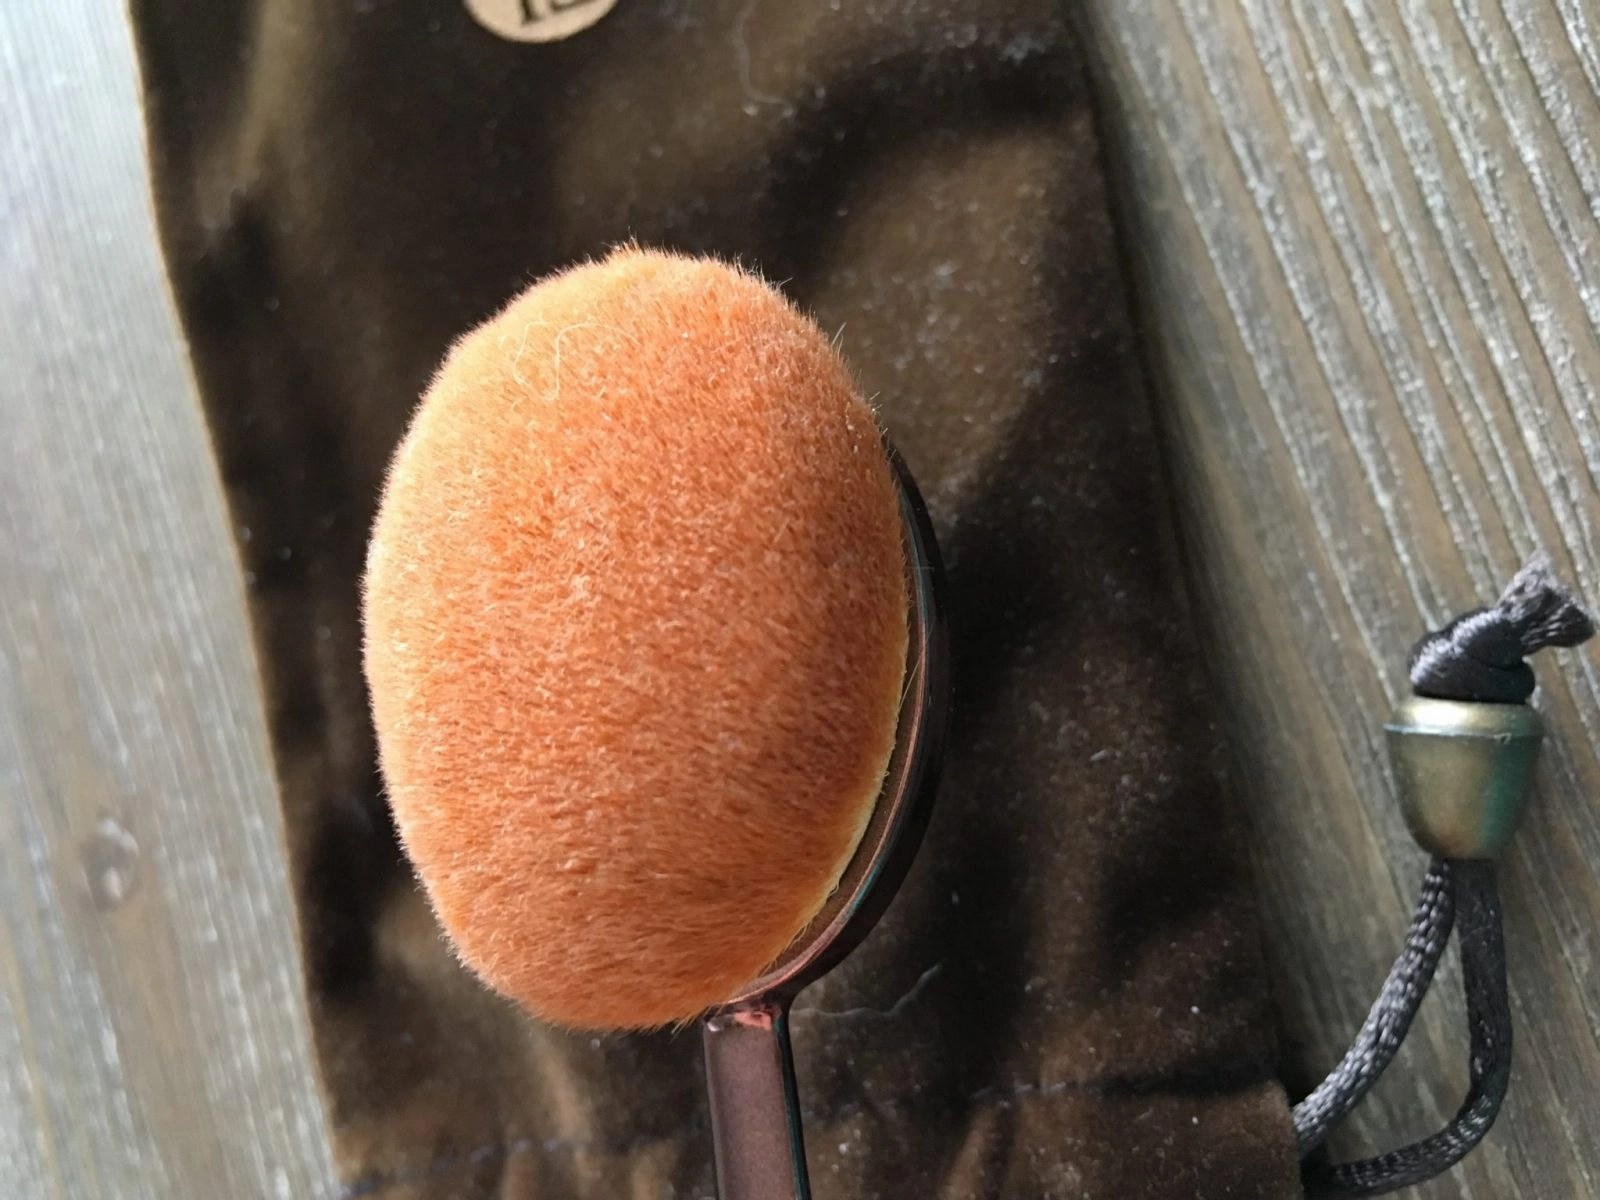 Hue Foundation Brush Side View birds eye view